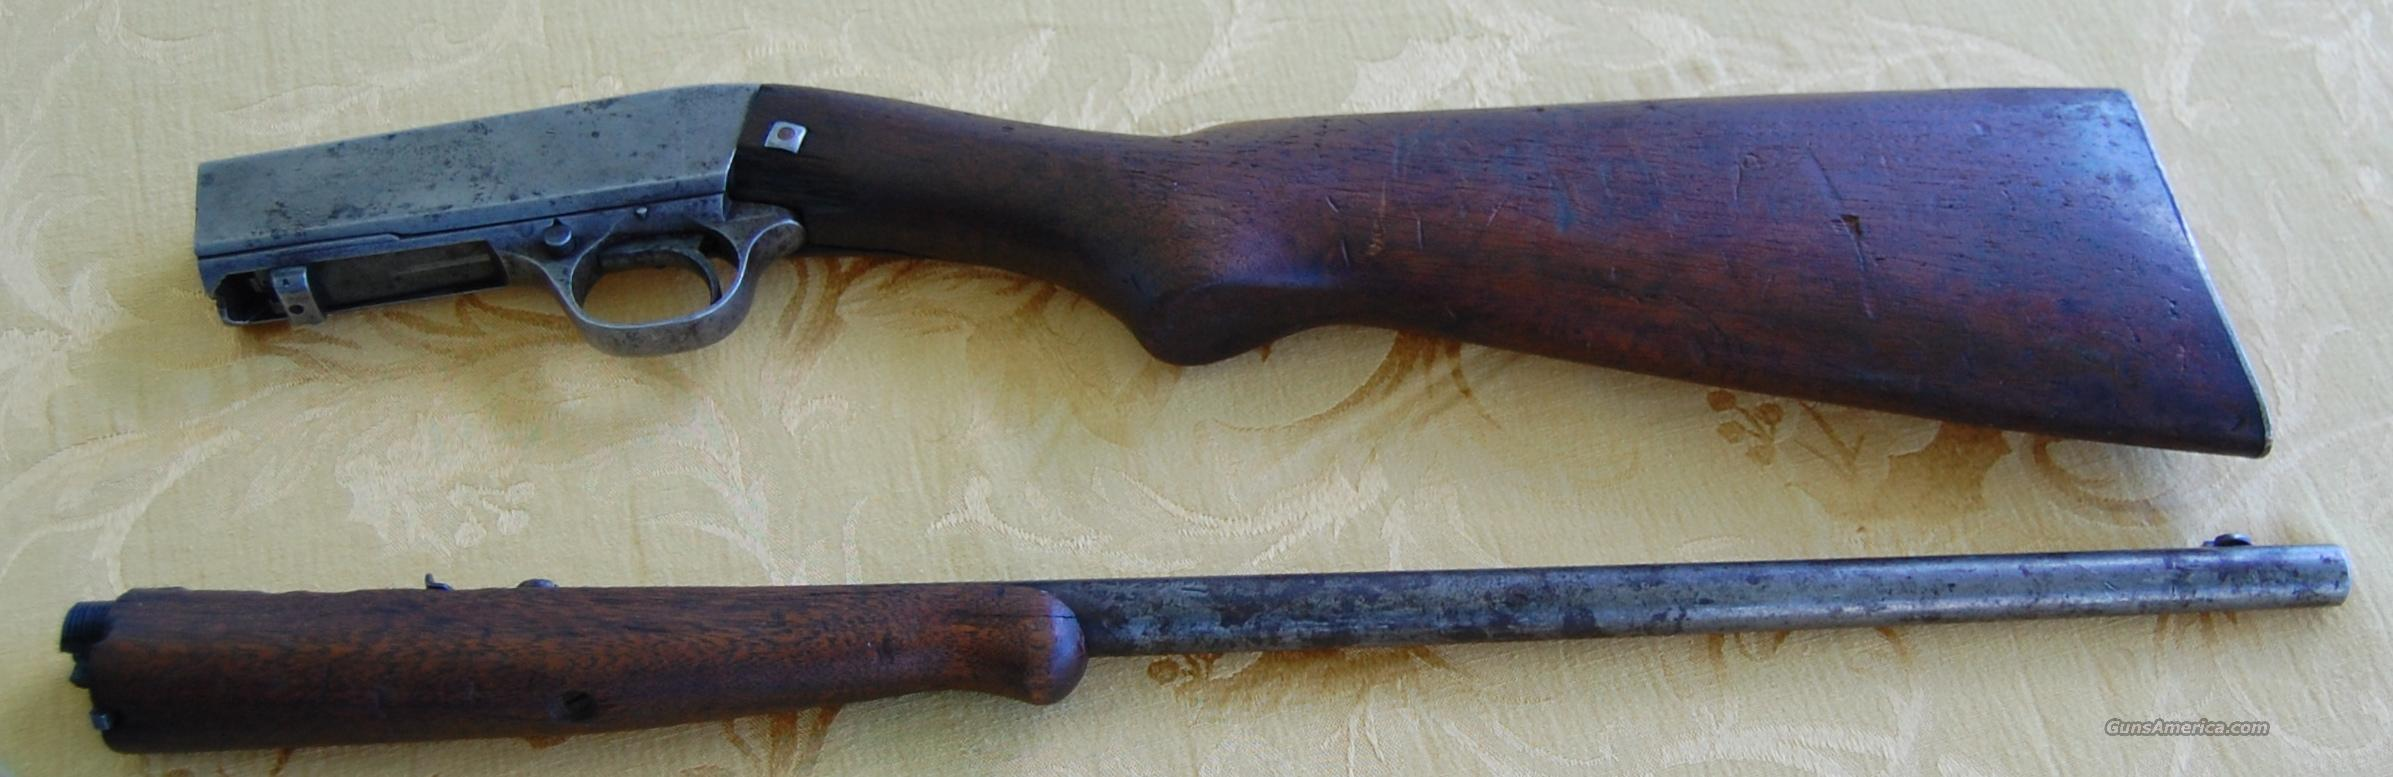 REMINGTON MODEL 24 GALLERY   Guns > Rifles > Remington Rifles - Modern > .22 Rimfire Models